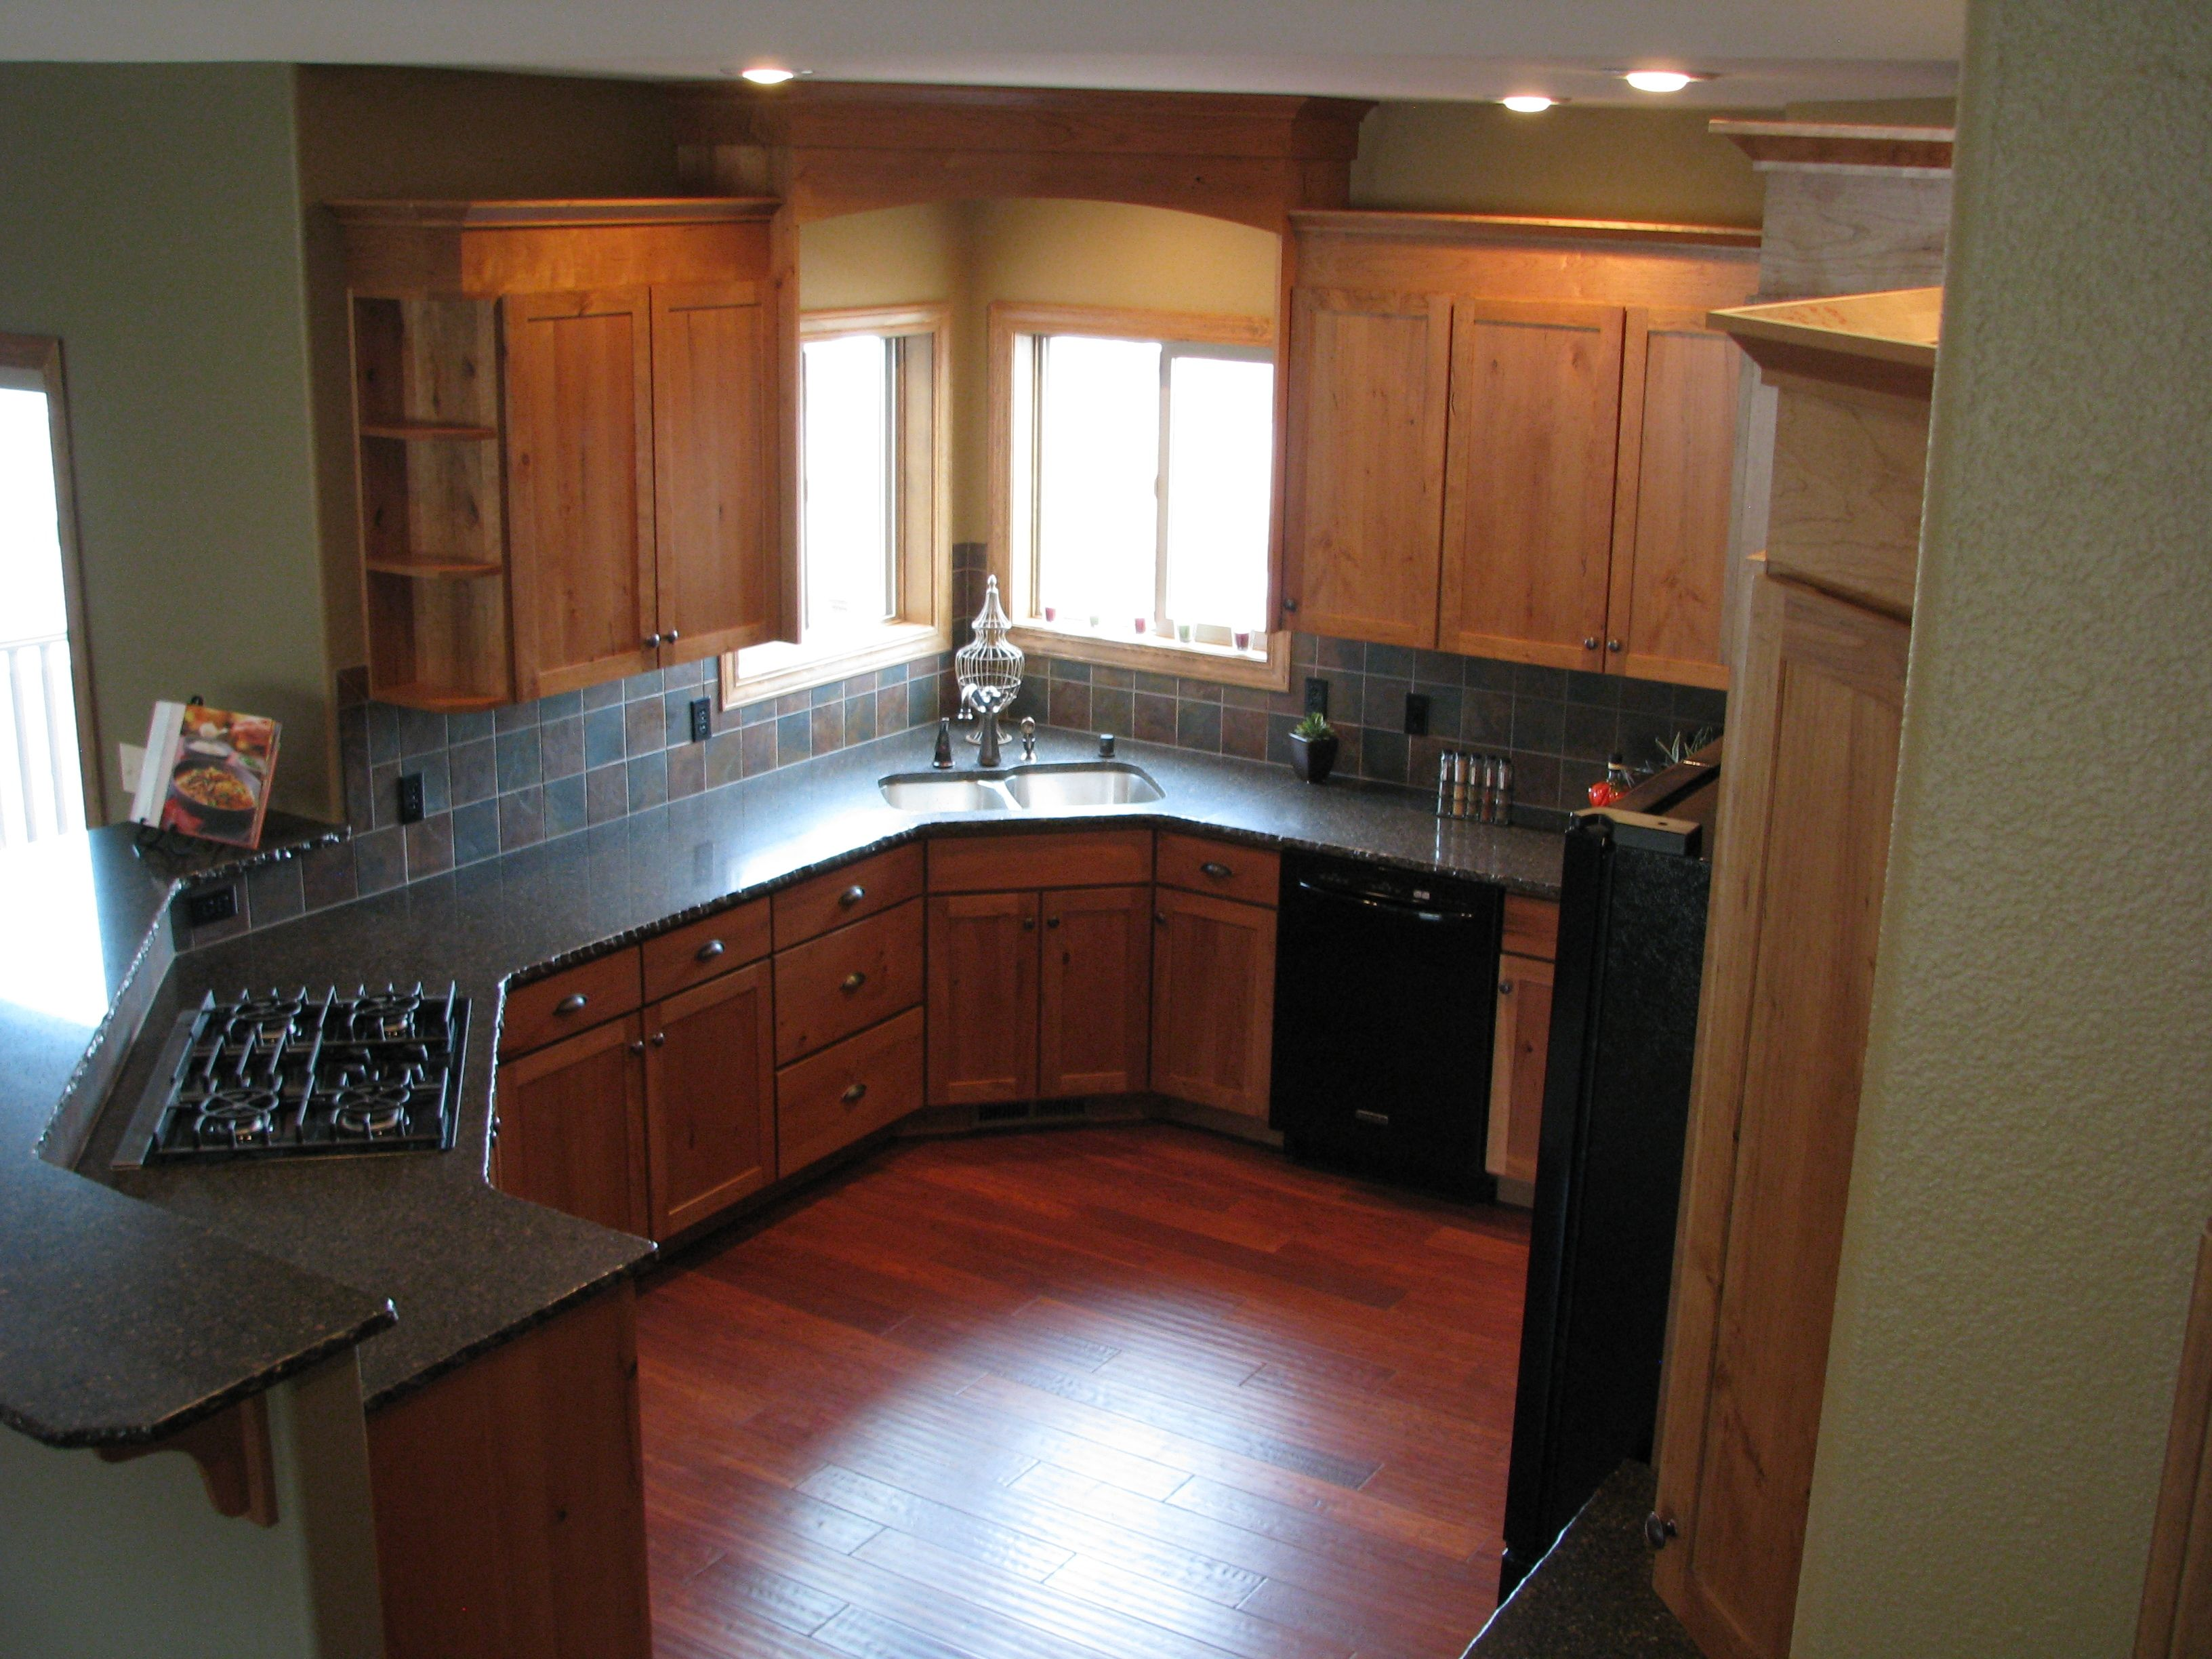 Crown Cabinets Clearcreek Knotty Cherry Natural Crown Cabinets Kitchen Kitchen Cabinets